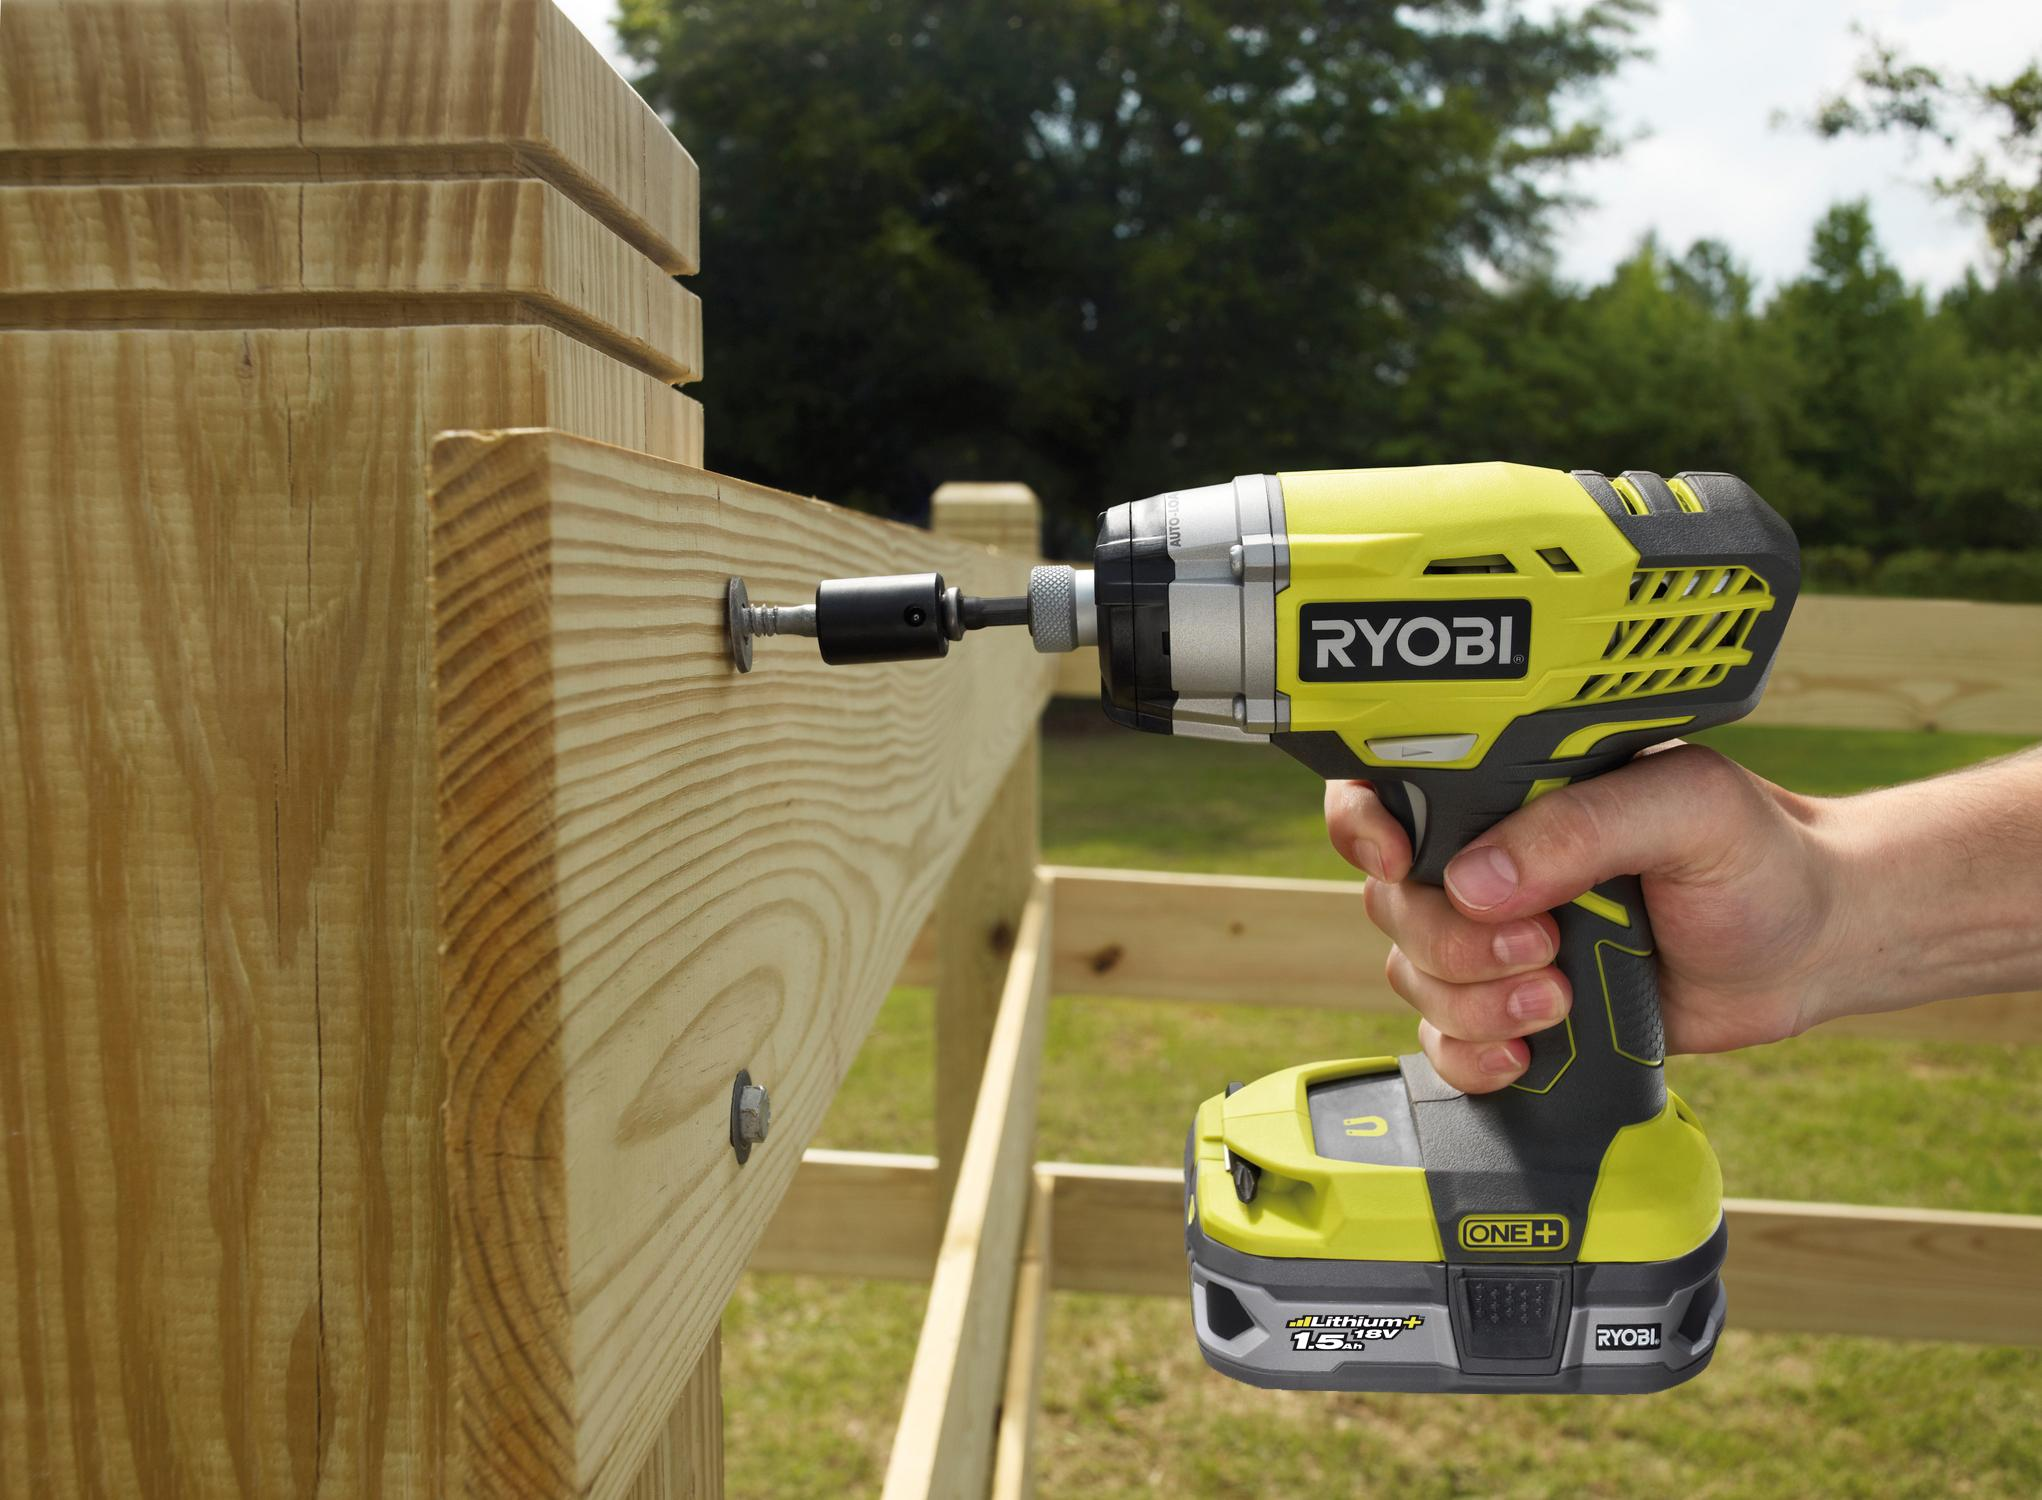 Scenic Ryobi One Impact Driver V Body Only Amazoncouk Diy  Tools With Likable View Larger With Astonishing Garden Of The Sun Also Paul Cafe Covent Garden In Addition Decorative Garden Stones Pebbles And Covent Garden Skinny Soup As Well As Garden Pot Stand Additionally What Is A Garden Room From Amazoncouk With   Likable Ryobi One Impact Driver V Body Only Amazoncouk Diy  Tools With Astonishing View Larger And Scenic Garden Of The Sun Also Paul Cafe Covent Garden In Addition Decorative Garden Stones Pebbles From Amazoncouk